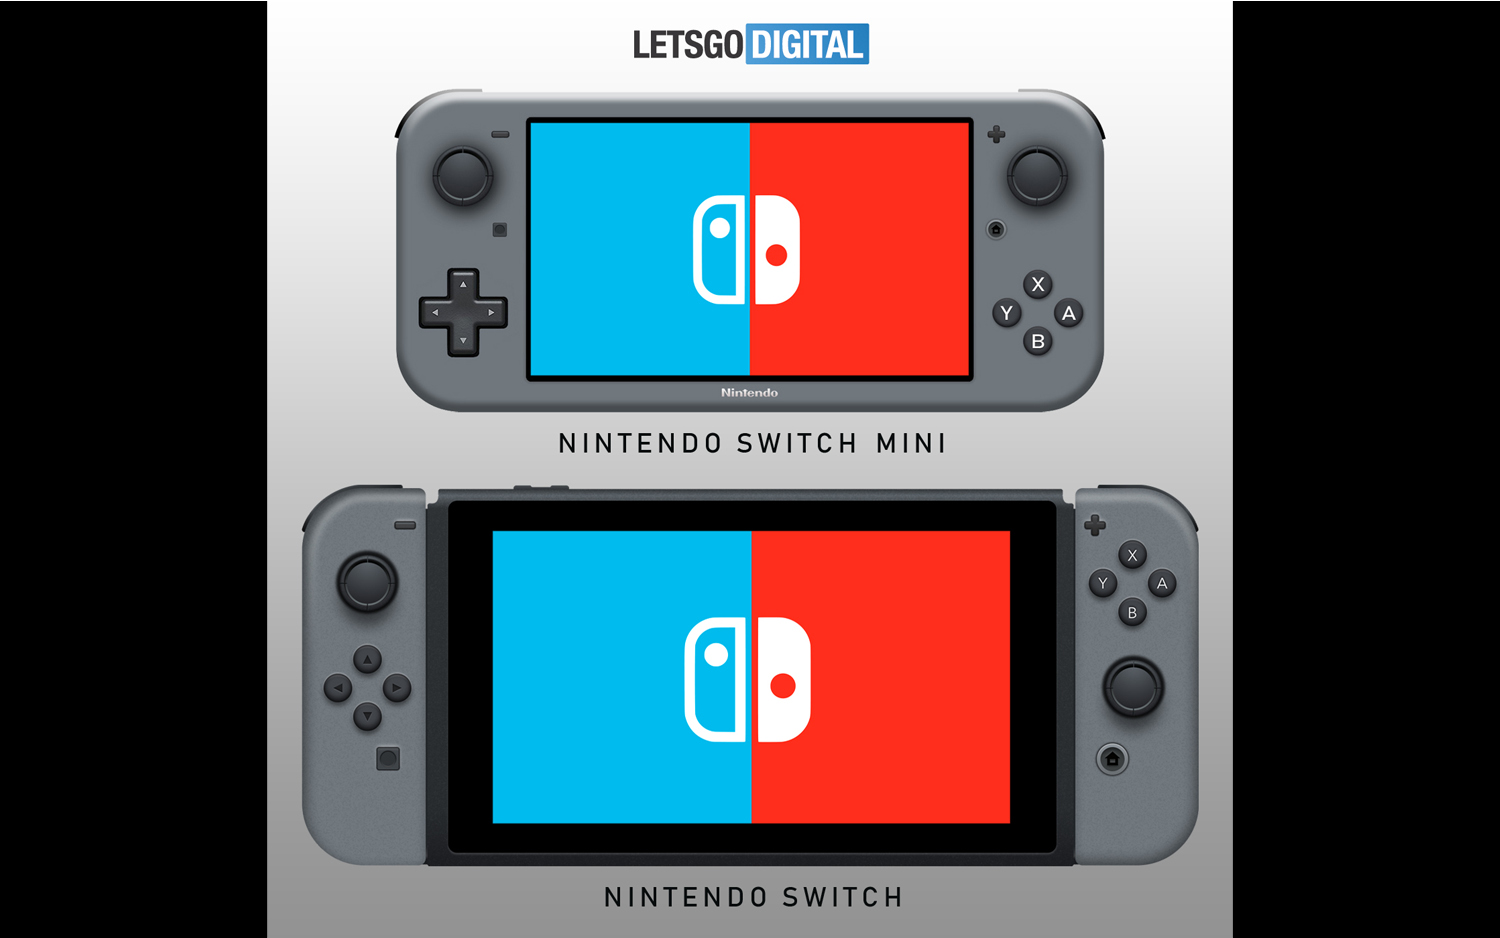 Here's the Rumored Nintendo Switch Mini Compared to the Current Switch